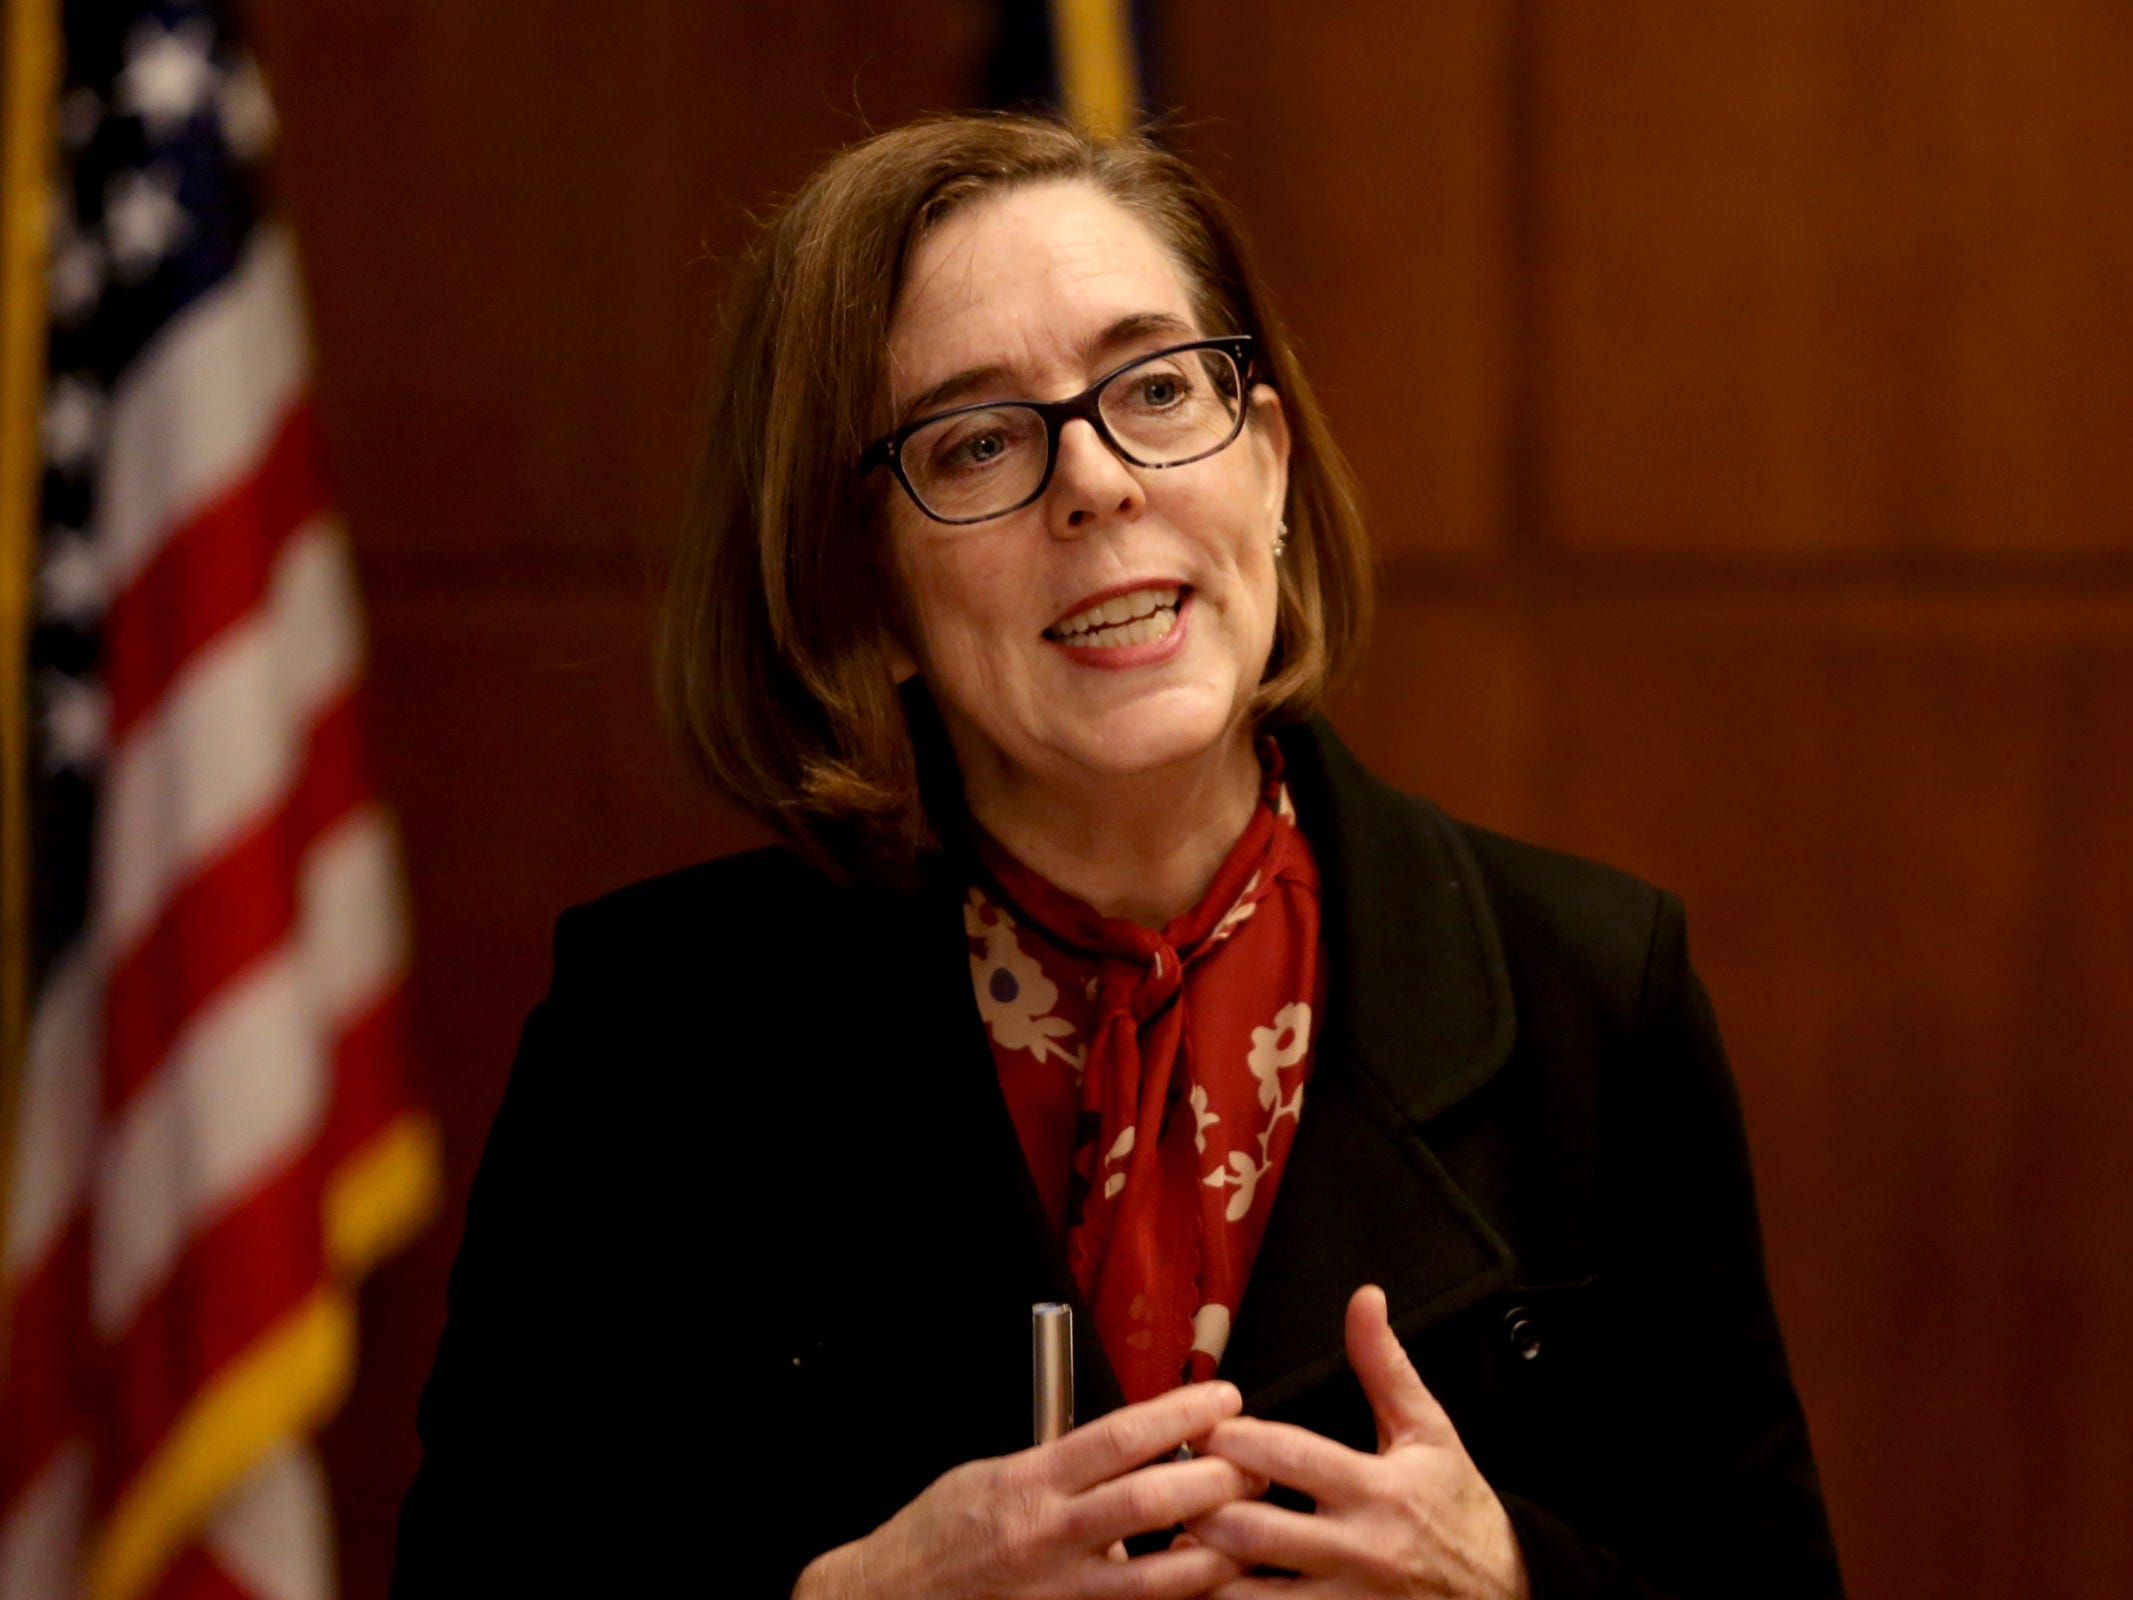 Gov. Kate Brown's proposed budget stresses education, health care, voting reform